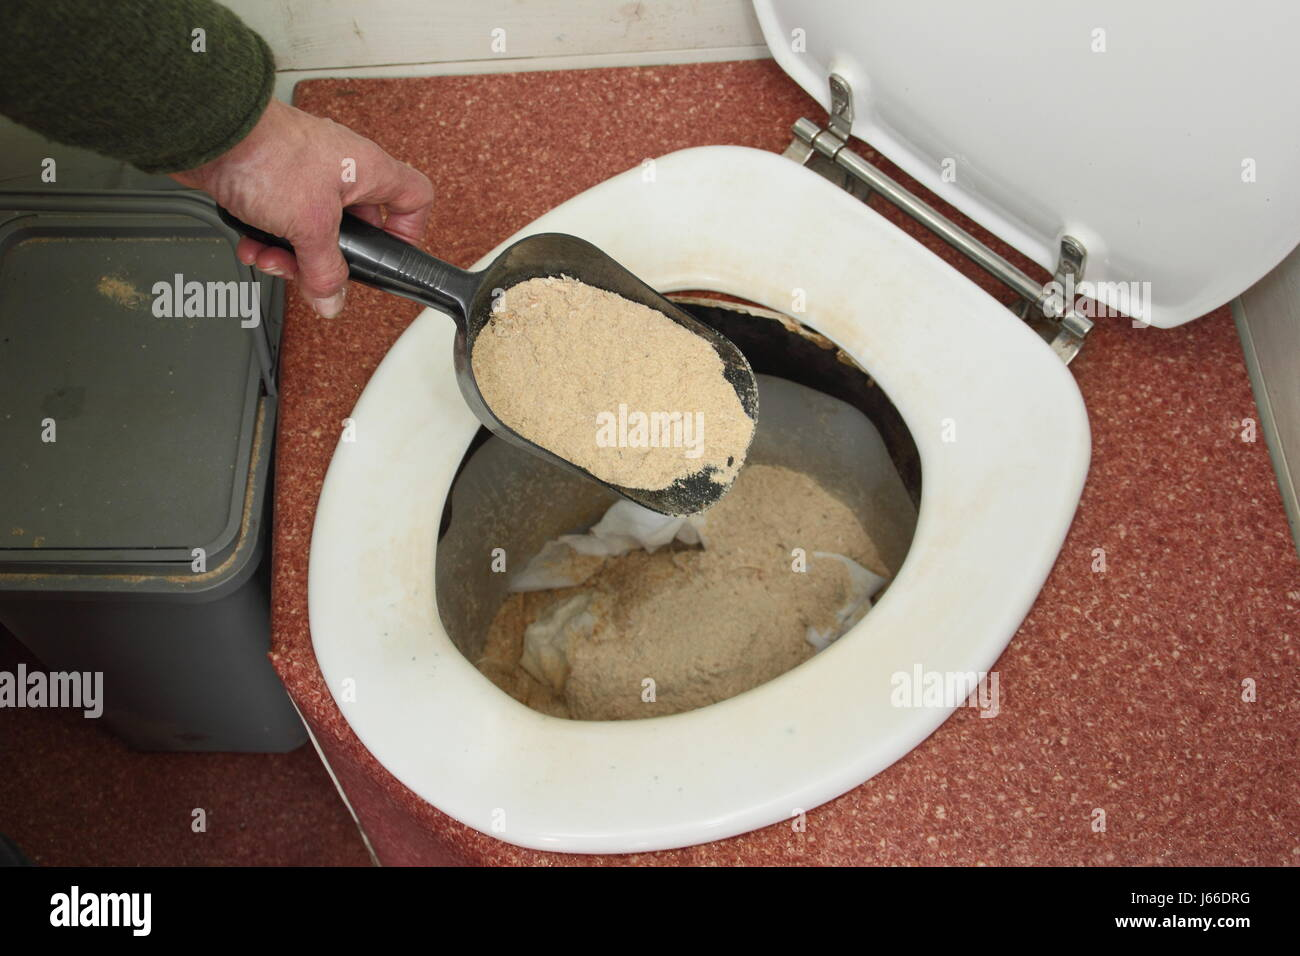 Working In Sawdust ~ Sawdust is sprinkled into a working composting toilet